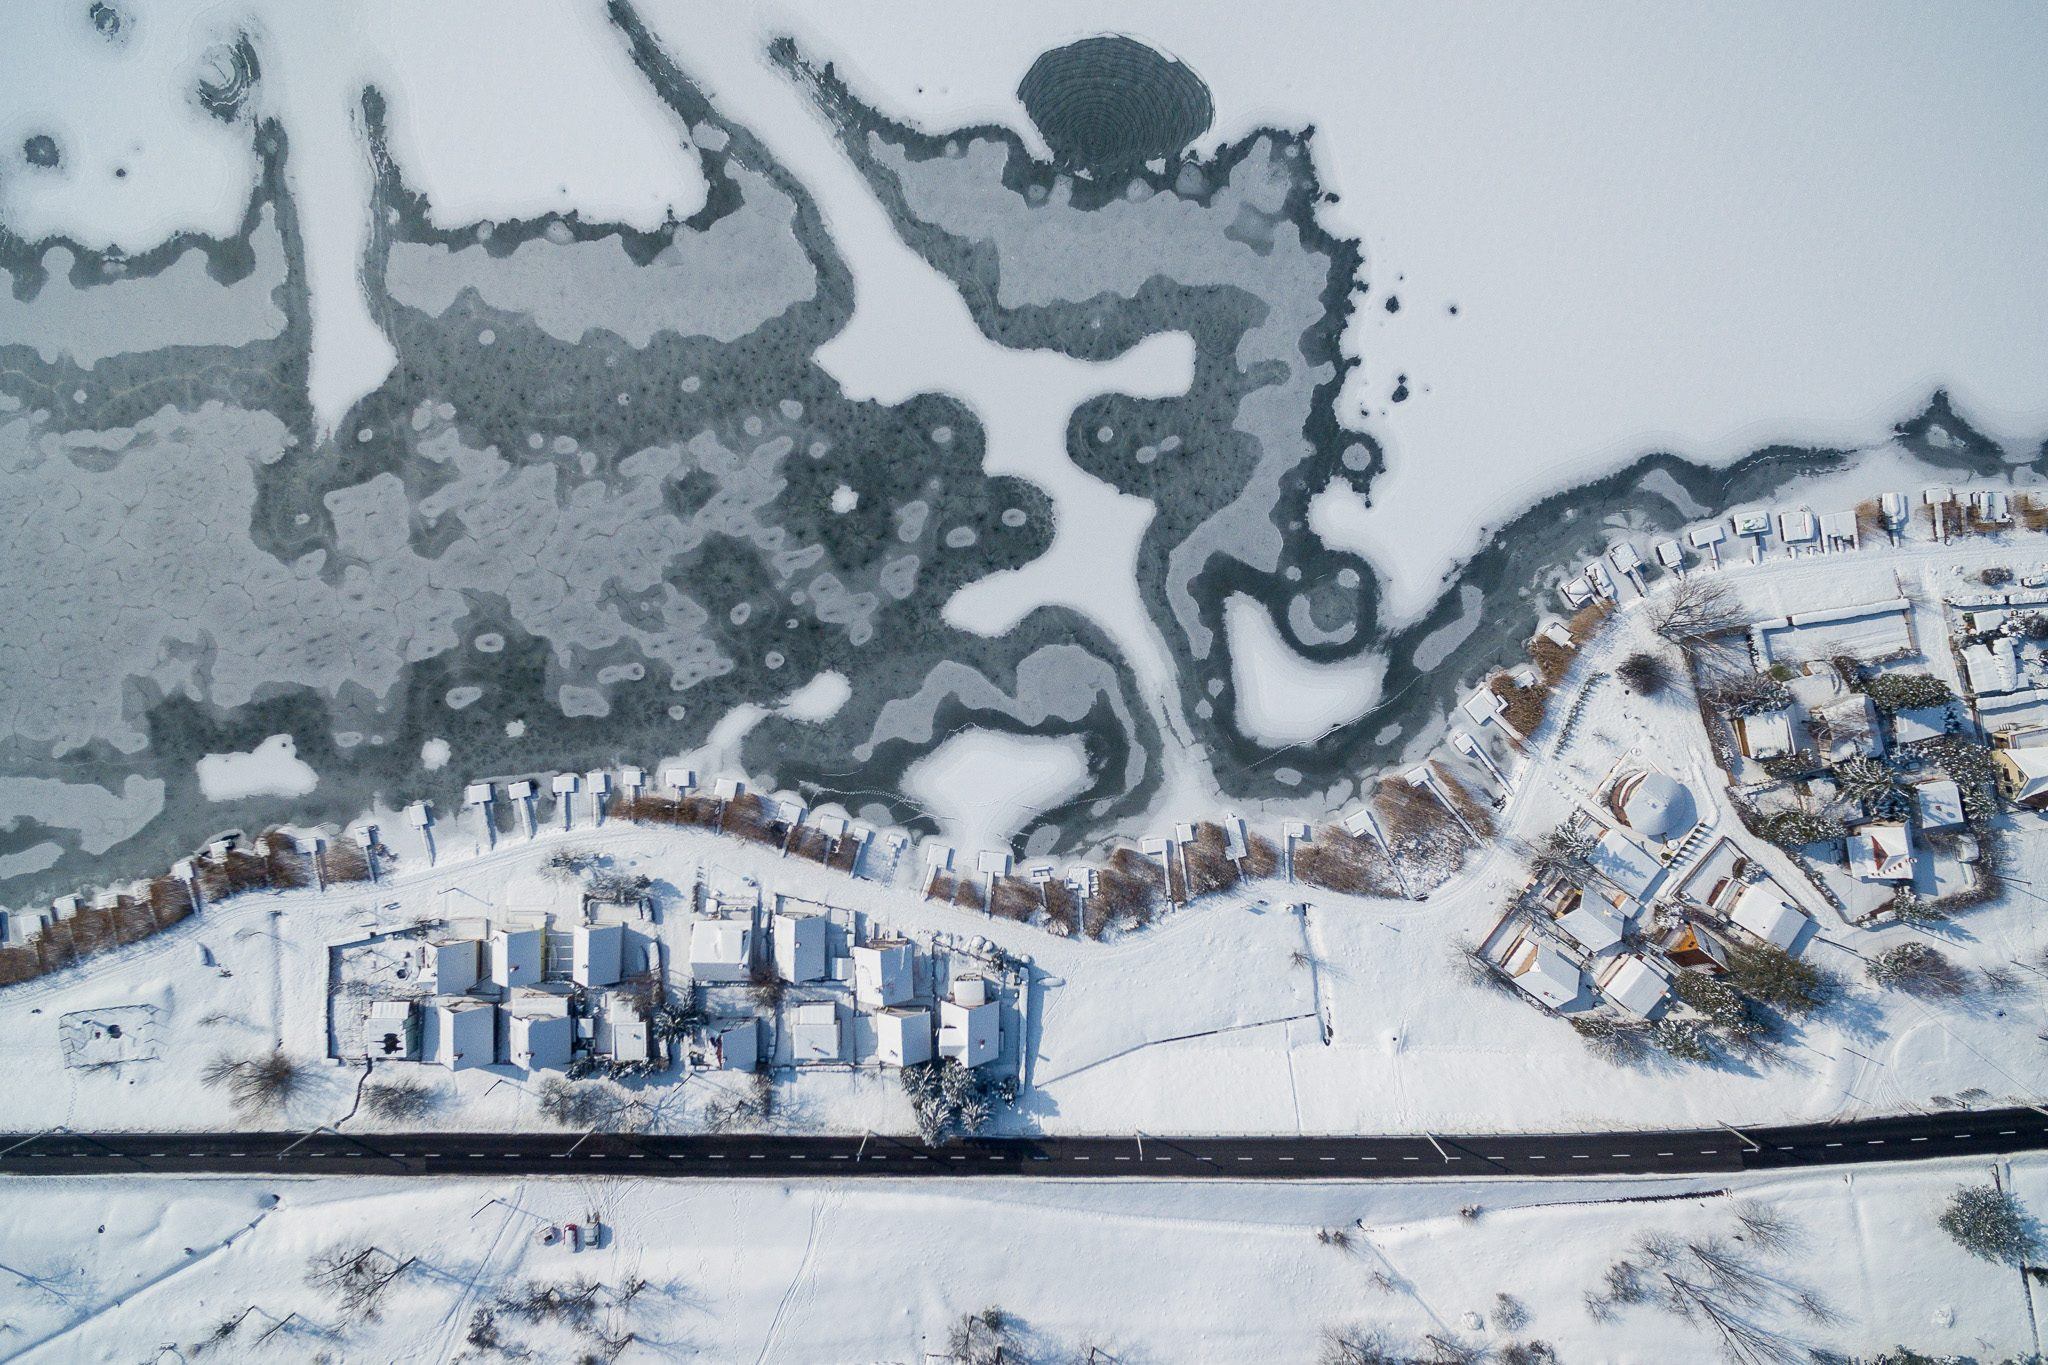 Frozen lake from above